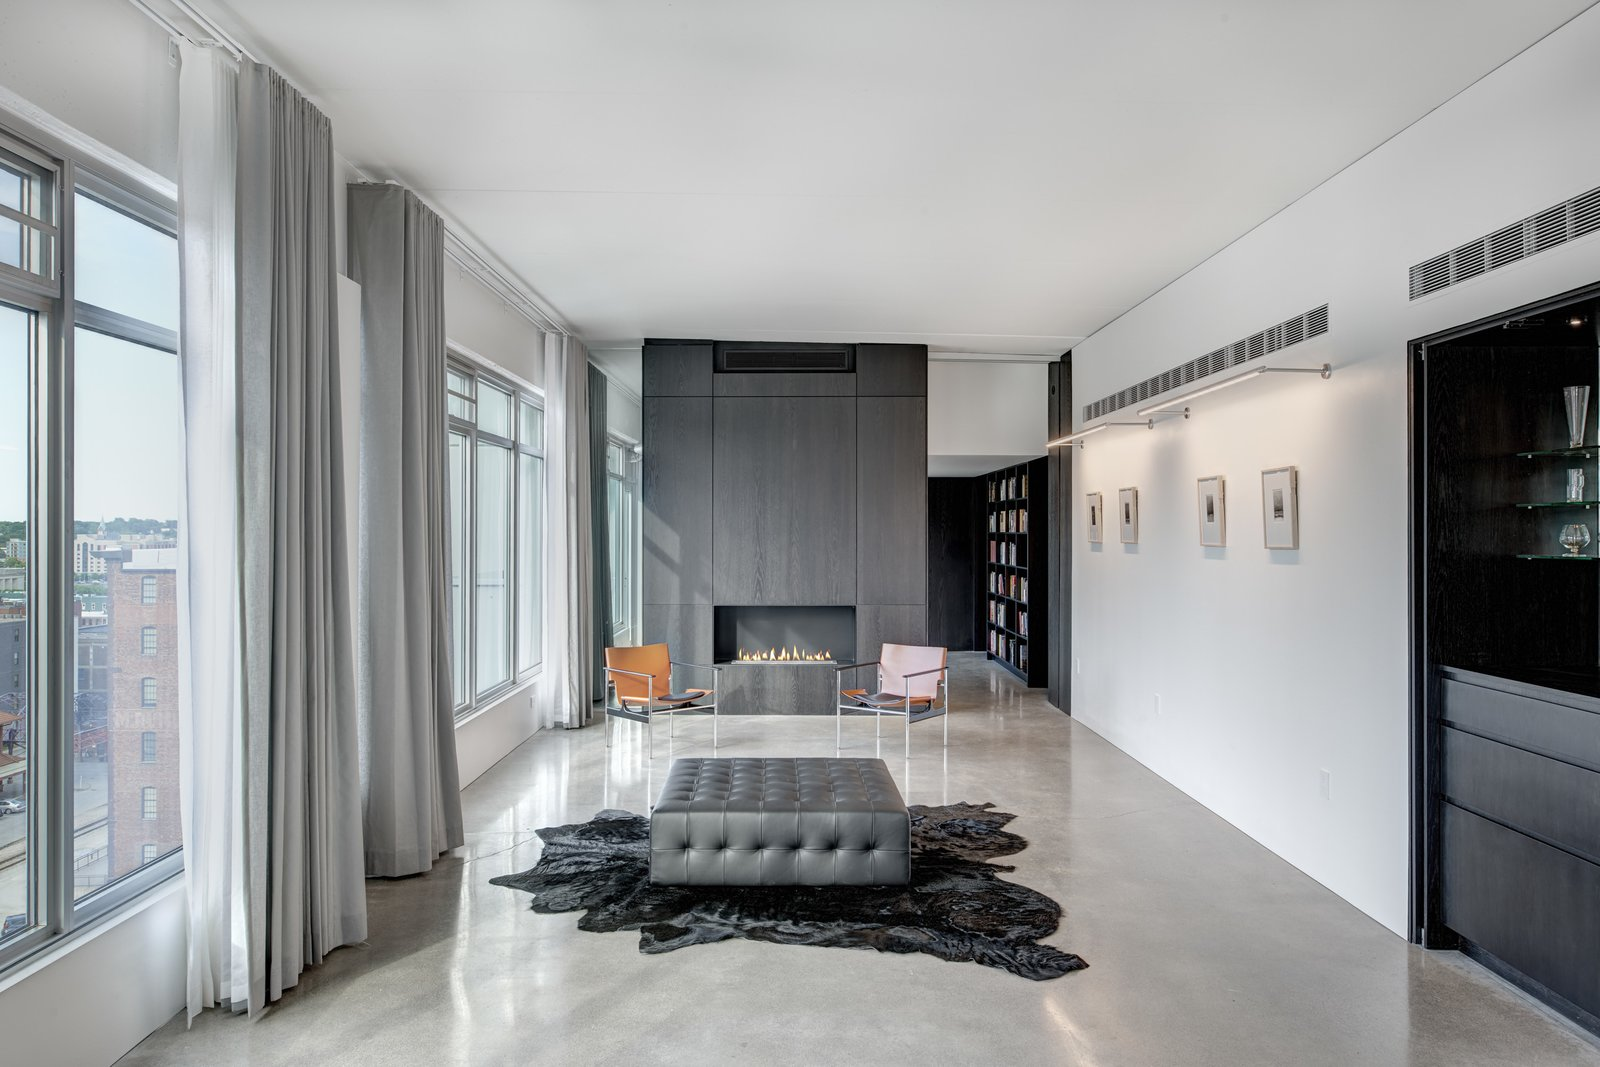 Living Room, Gas Burning Fireplace, Concrete Floor, Wall Lighting, Bench, Chair, and Standard Layout Fireplace The gallery contains the clients calligraphic art collection offers views to downtown.  Whiteline Residence by Neumann Monson Architects